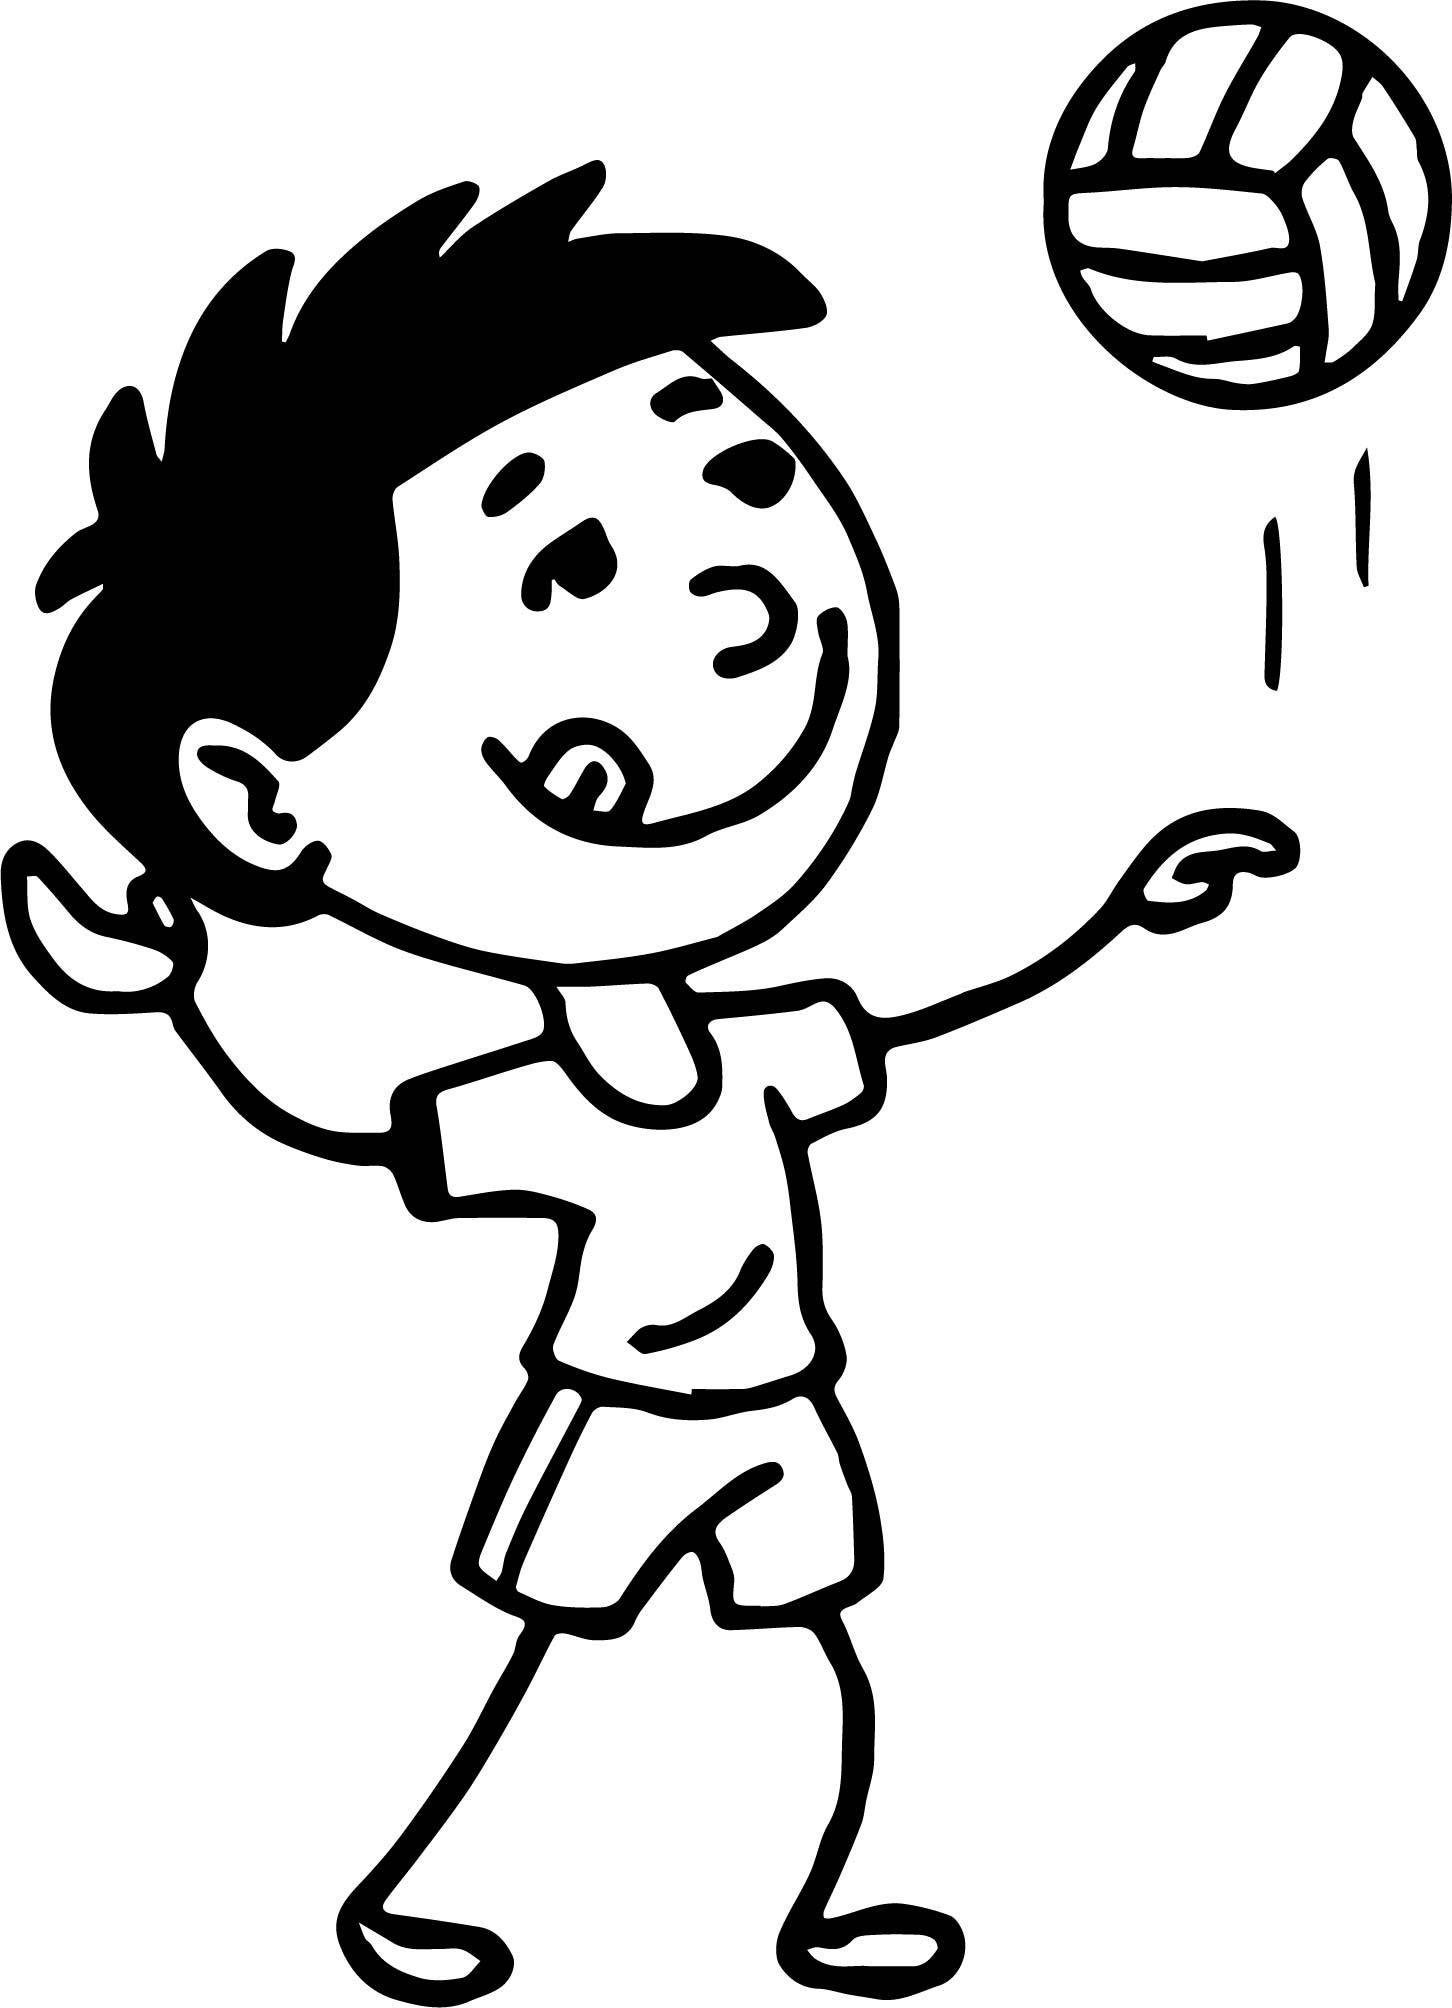 Bump Volleyball Pages Coloring Pages